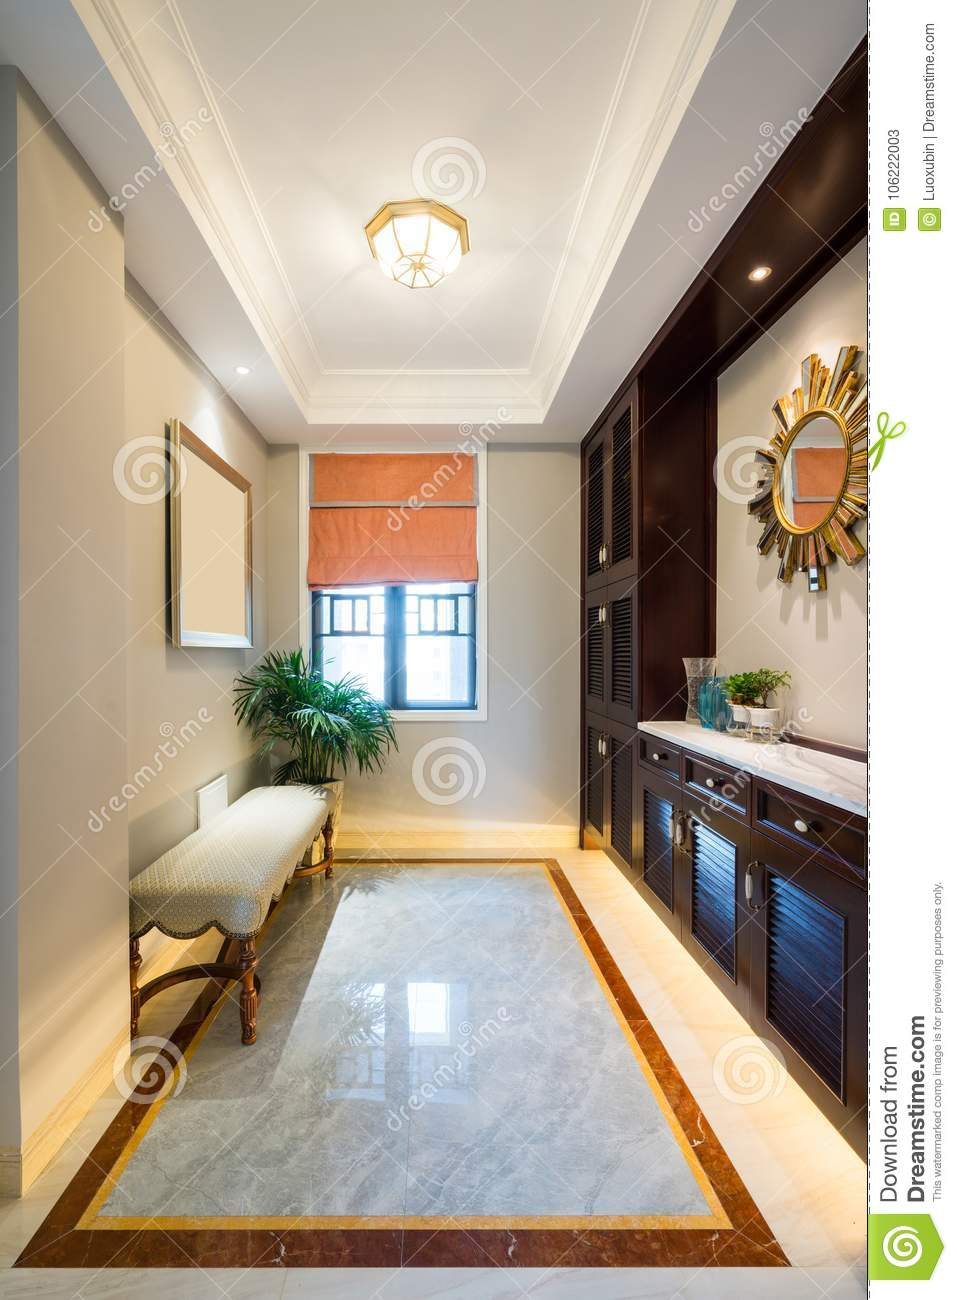 Nice House Interior Stock Image Image Of Wood Floor 106222003